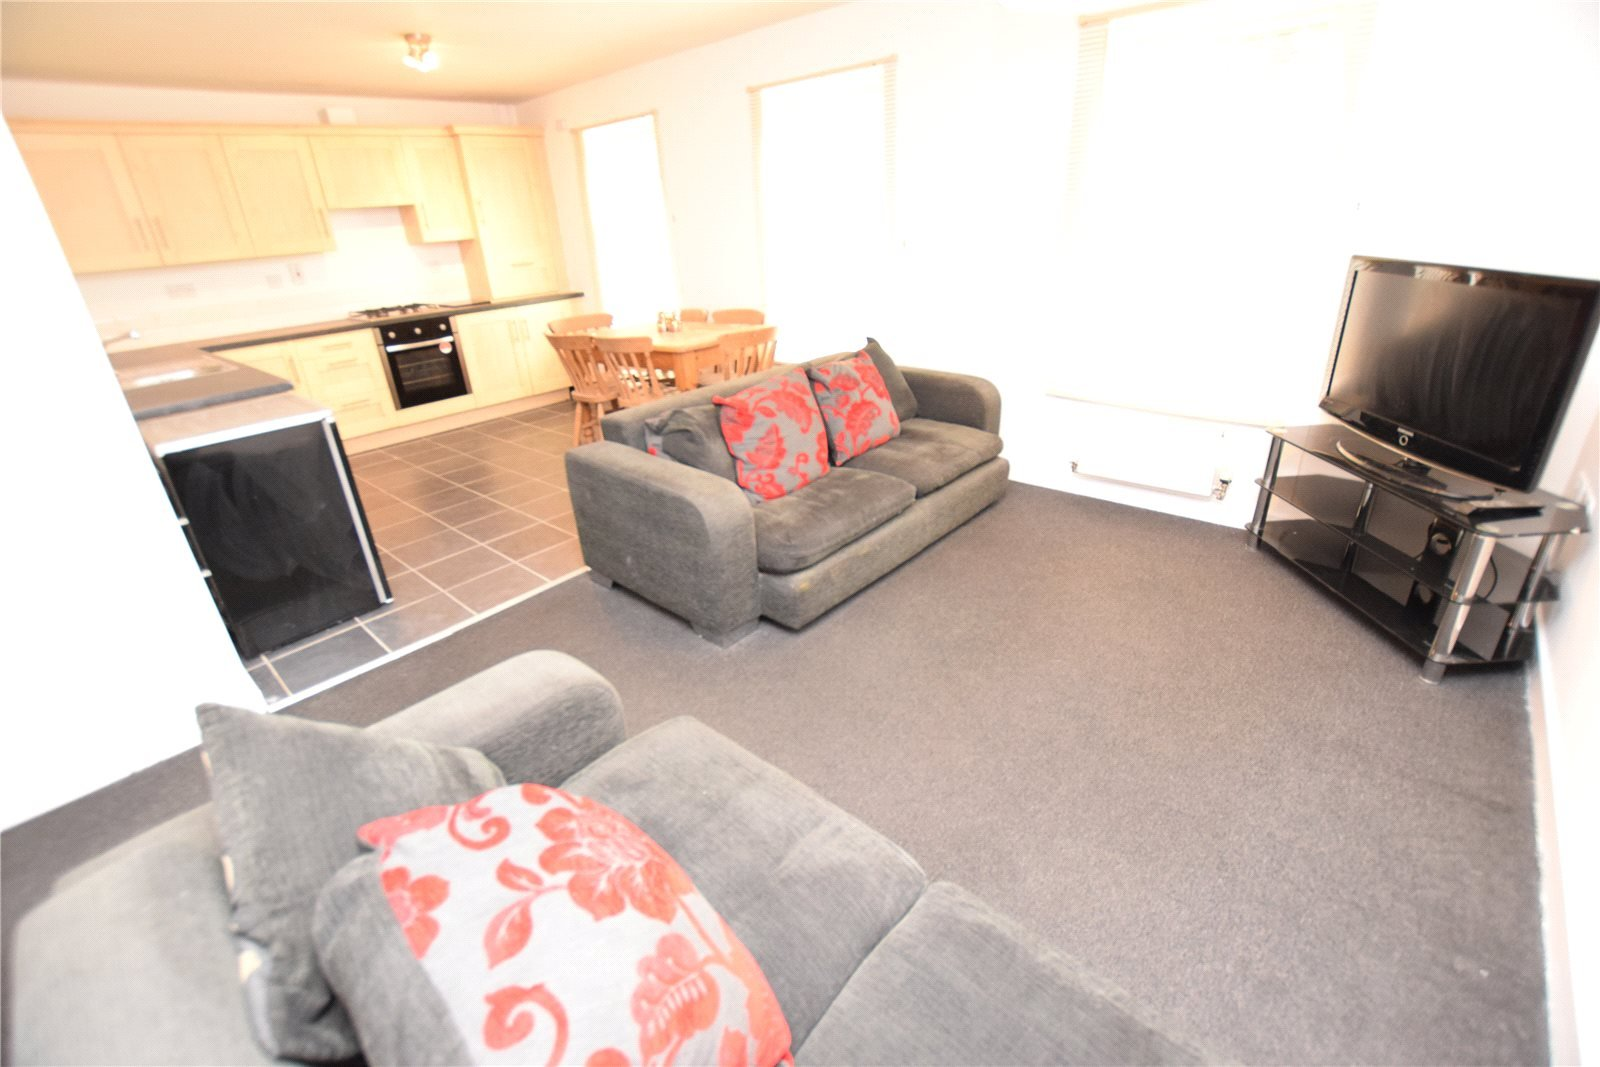 Property for sale in Wortley, interior living room and open plan kitchen